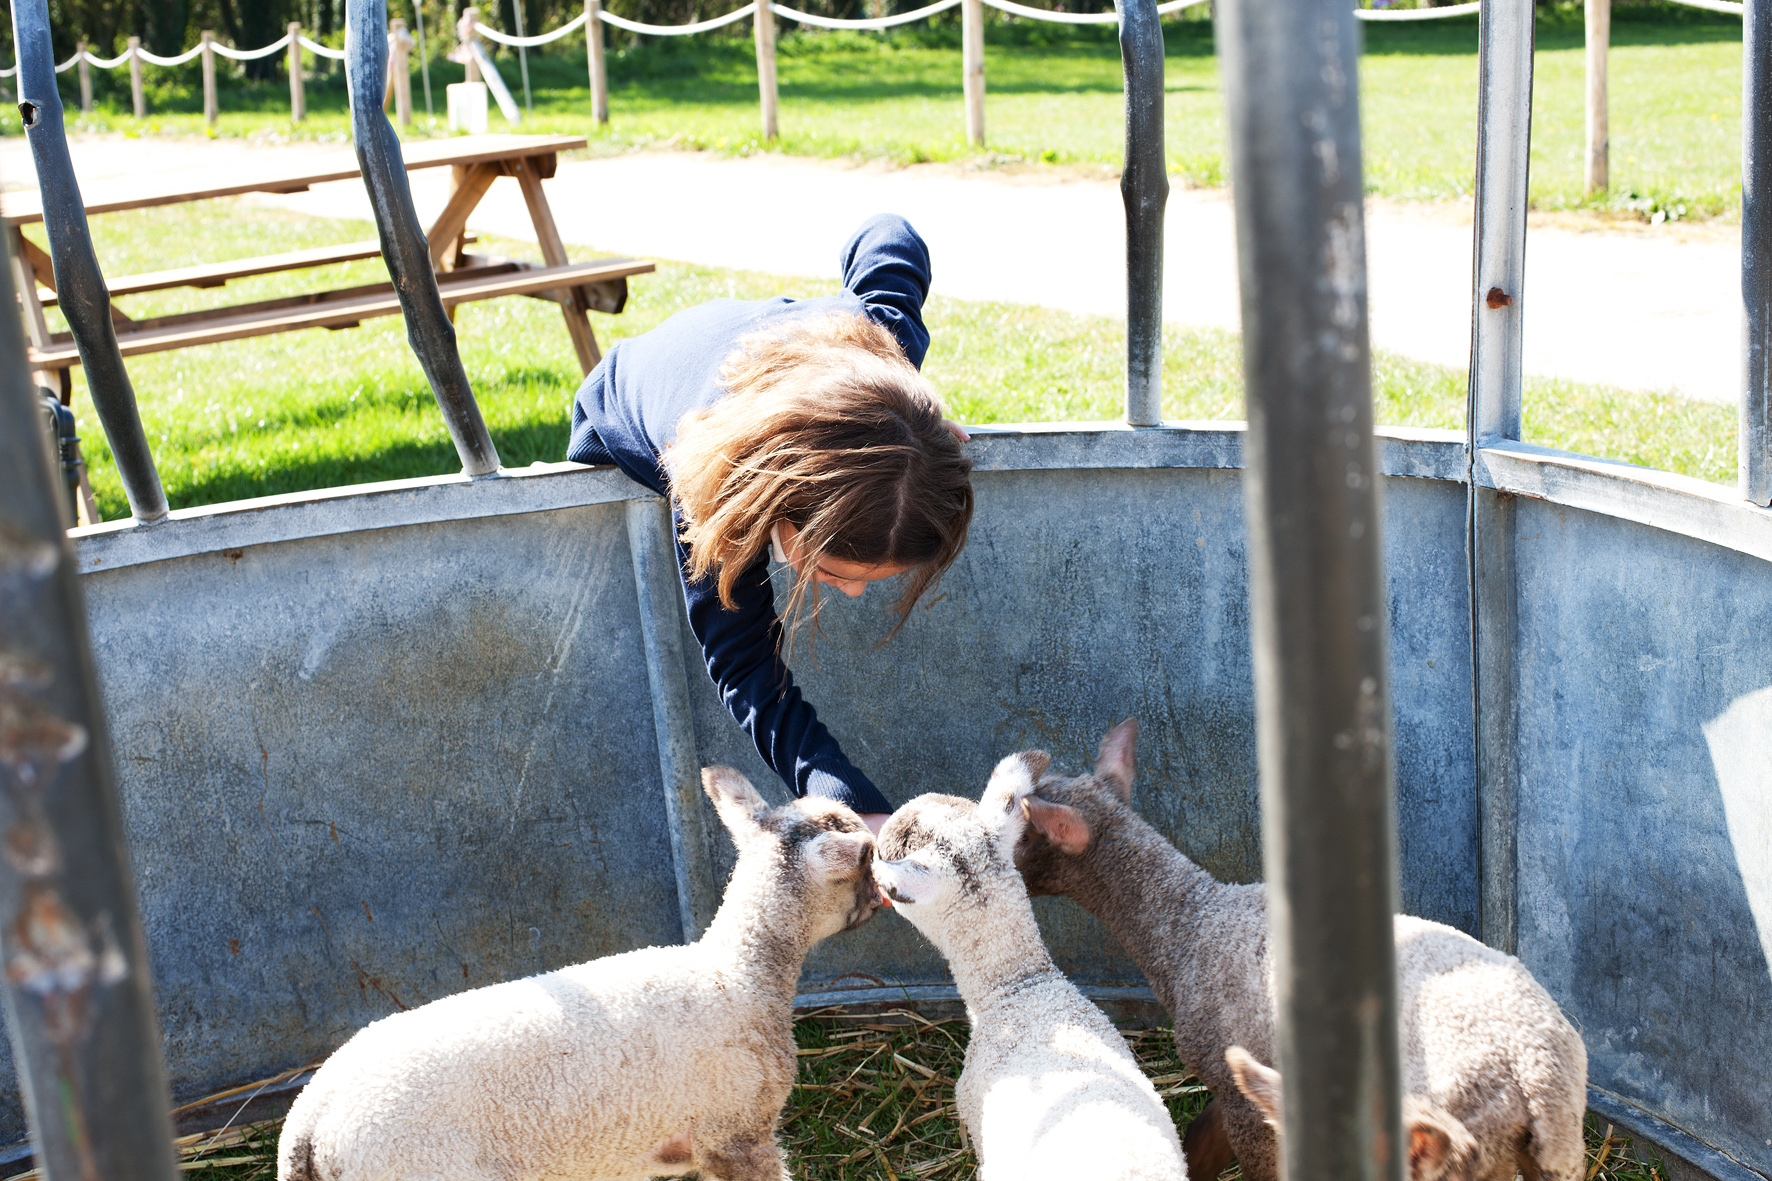 Make friends with our lambs